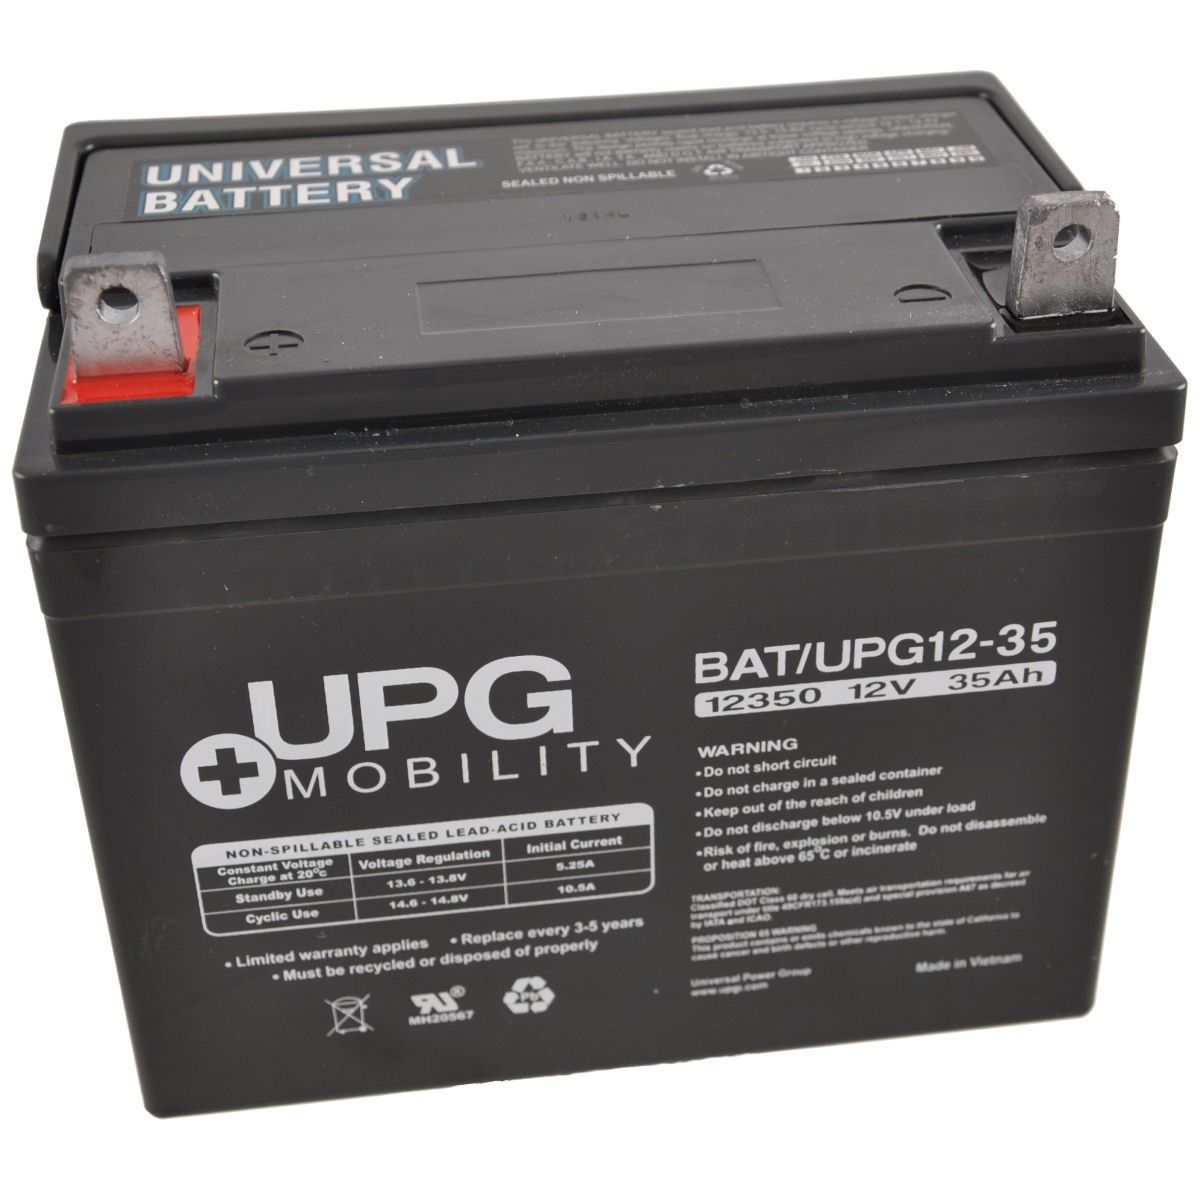 12V 35Ah UPG Sealed Lead Acid (AGM) Mobility Scooter Battery